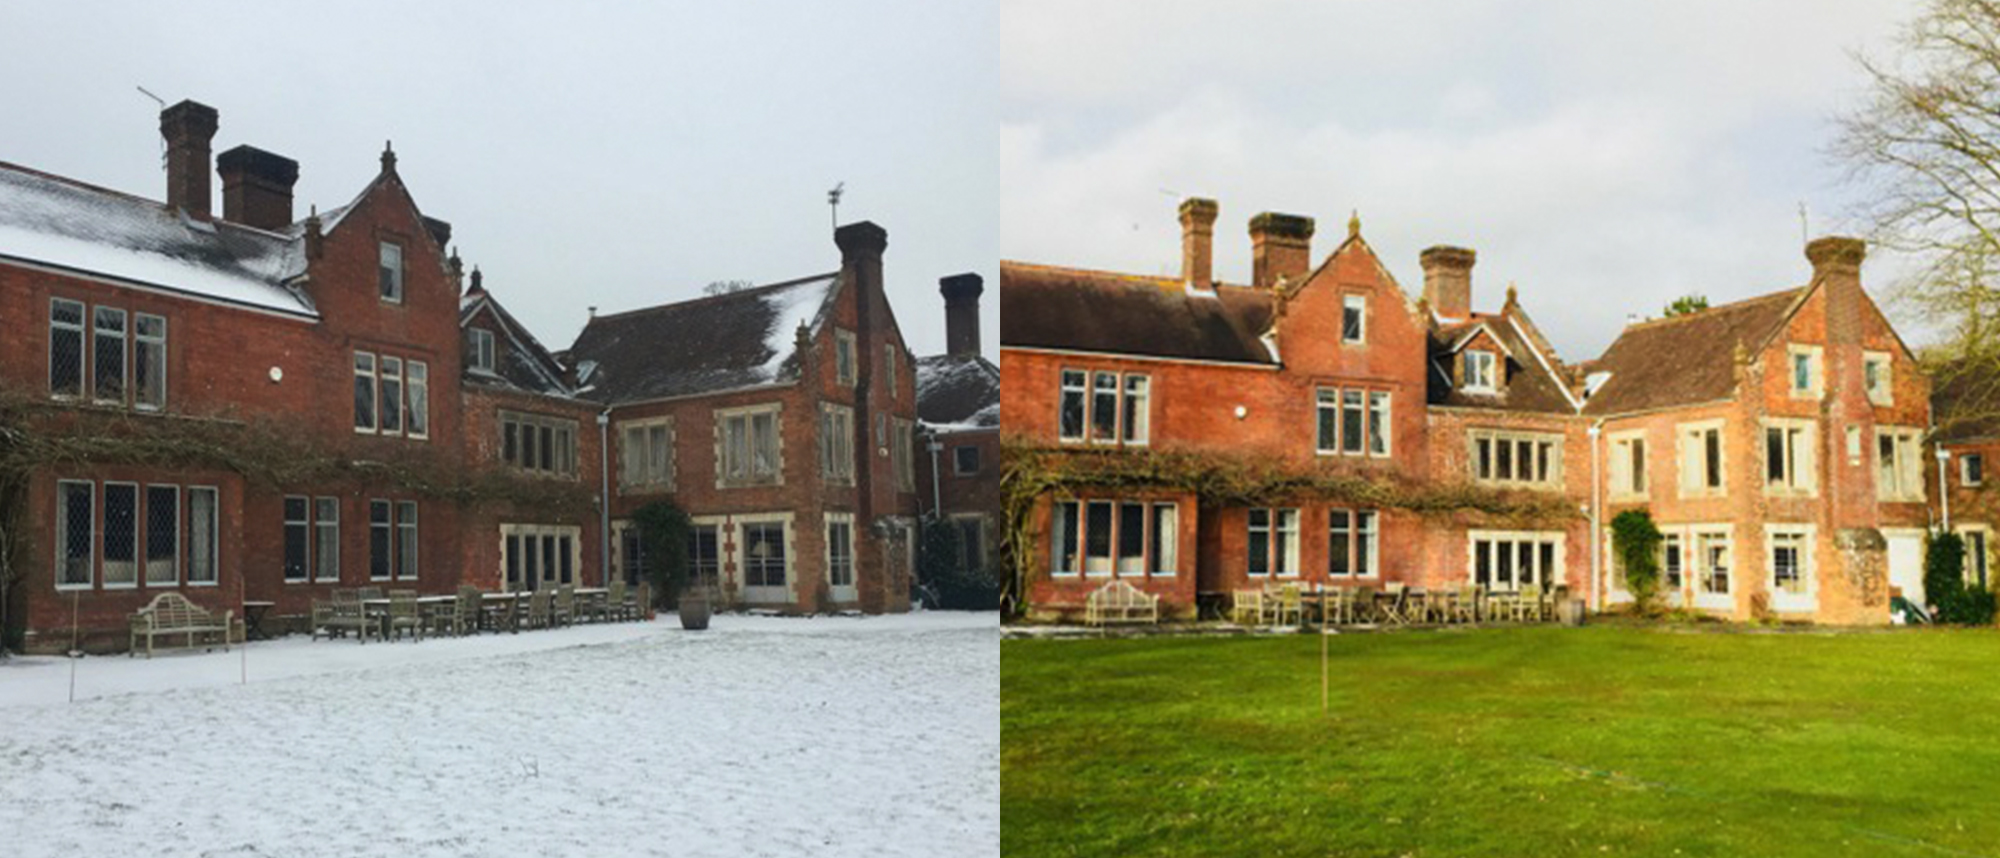 Northfields House before and after